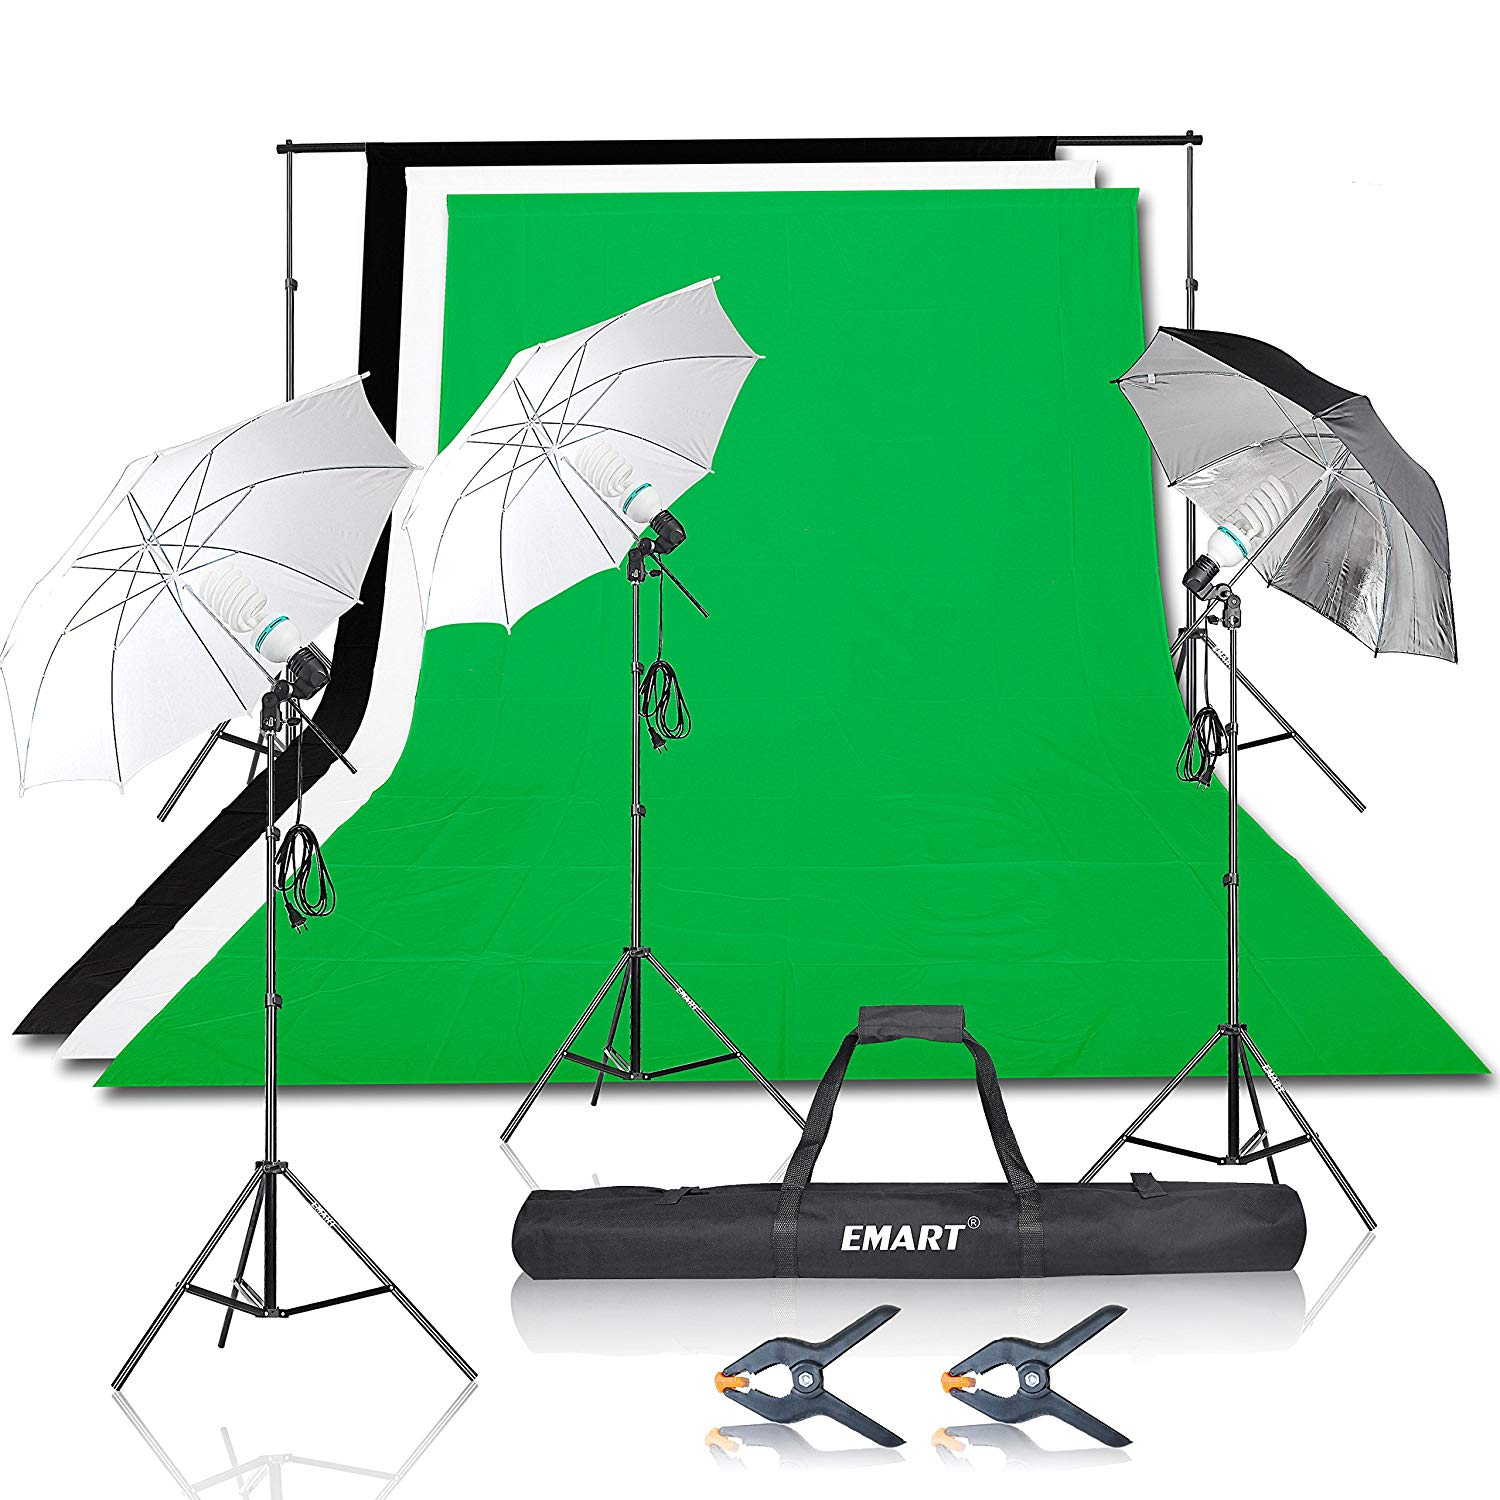 Emart 1500W Umbrella Continuous Lighting Kit with 7x10ft Background Support System for Photo Studio Product, Portrait and Video Shoot Photography